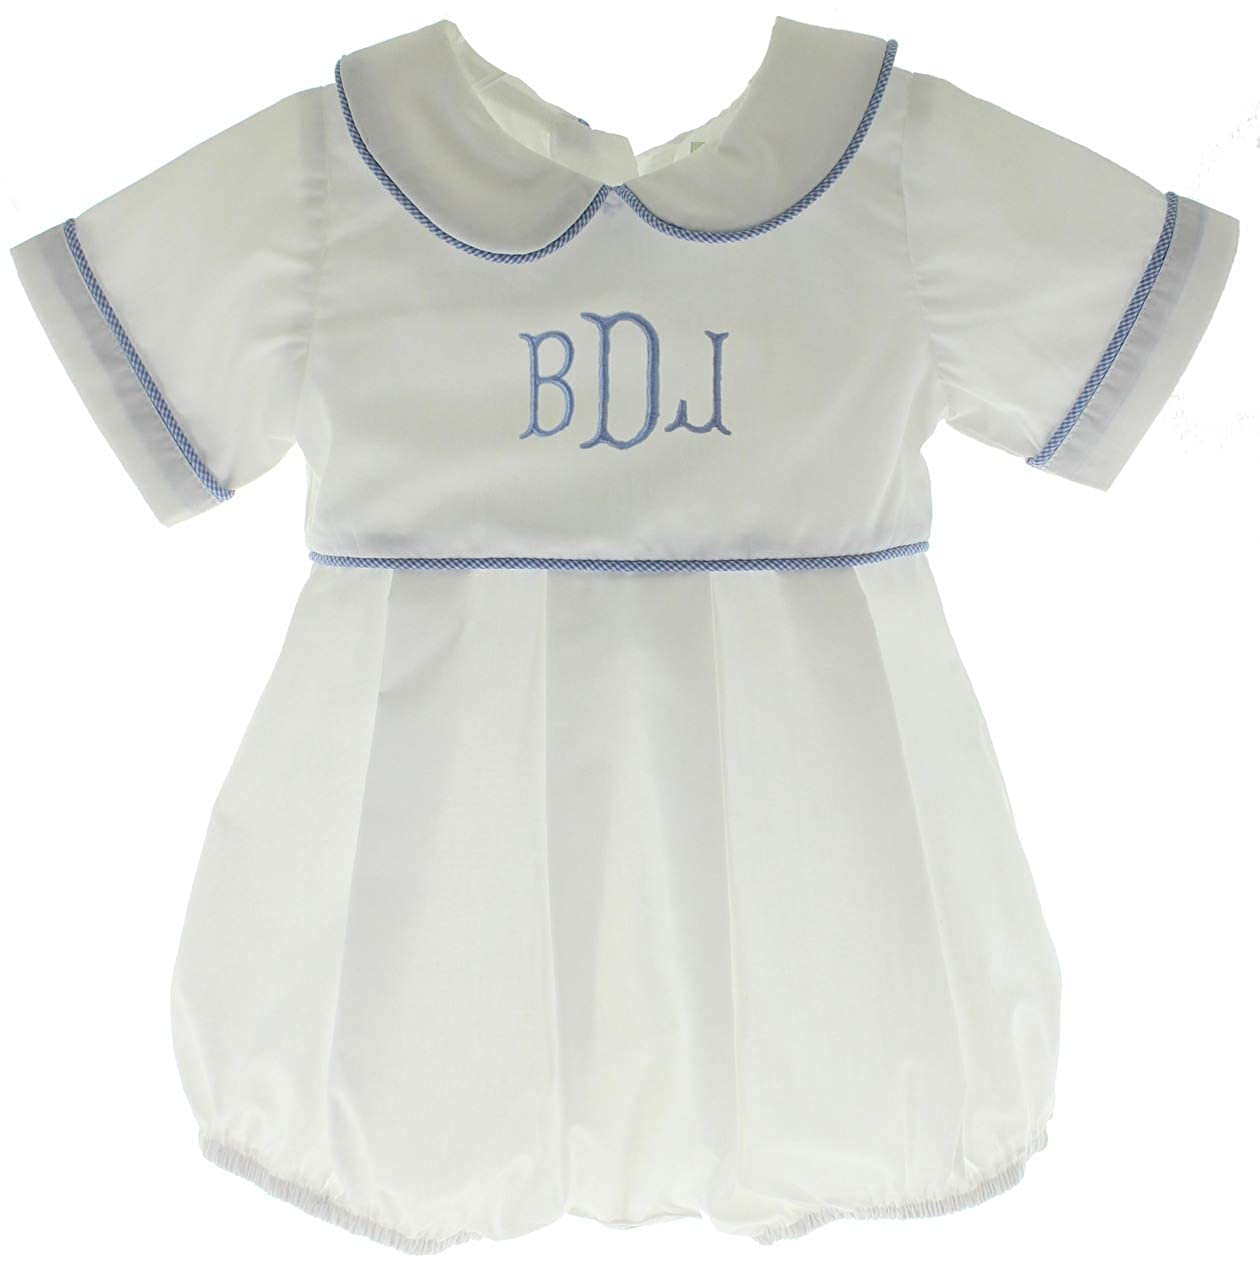 Hiccups Childrens Boutique Boys White Romper Blue Gingham Trim Dressy Baby Personalized Bubble Outfit